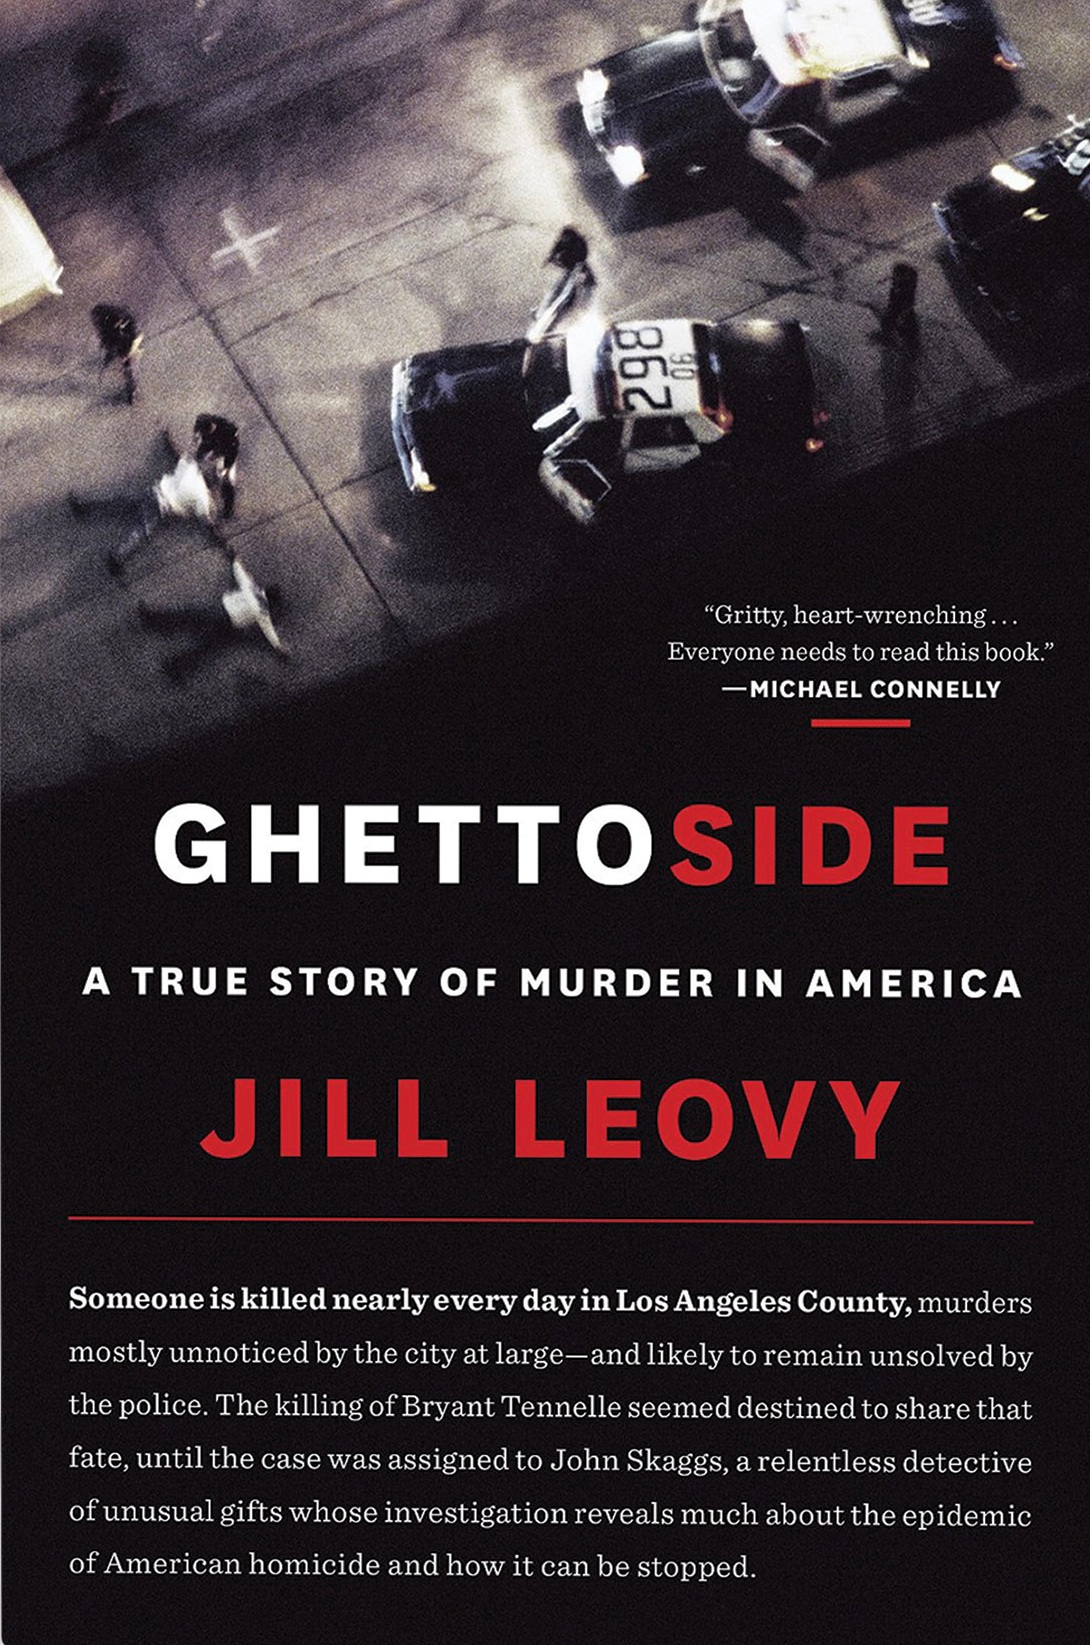 ghettoside_by_jill_leovy_book_WEB.jpg